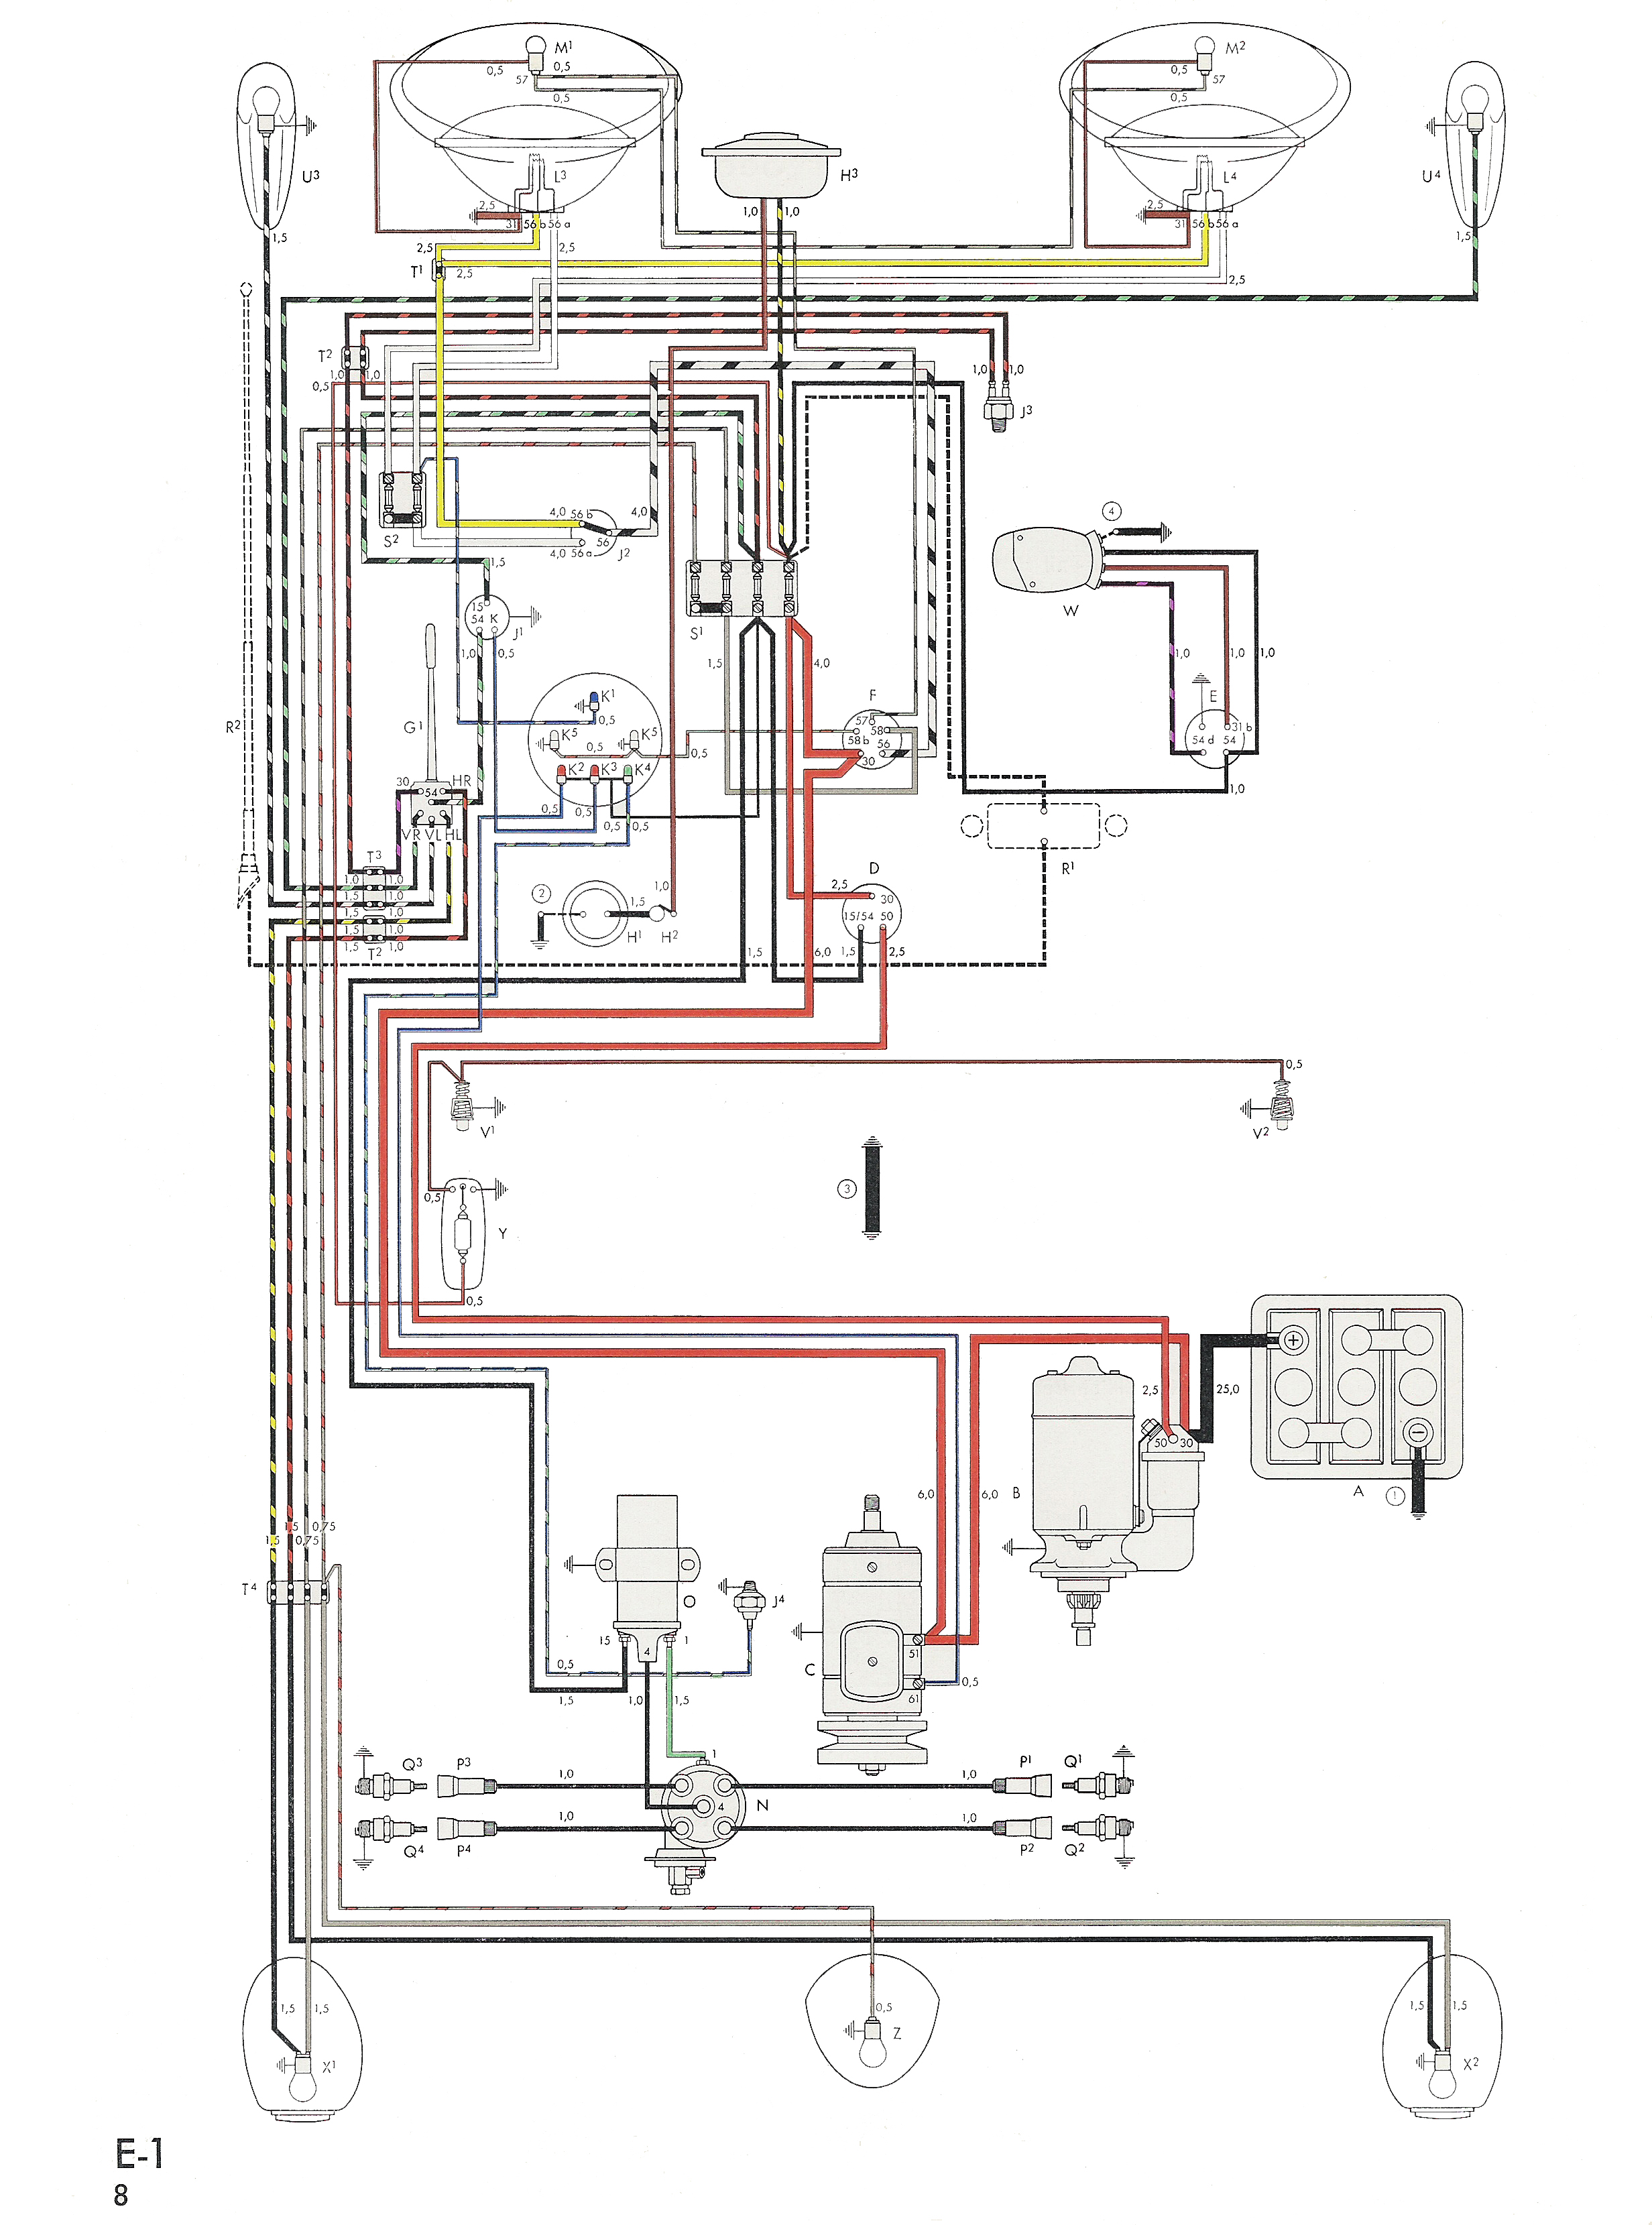 thesamba com type 1 wiring diagrams rh thesamba com vw beetle wiring vw beetle wiring loom